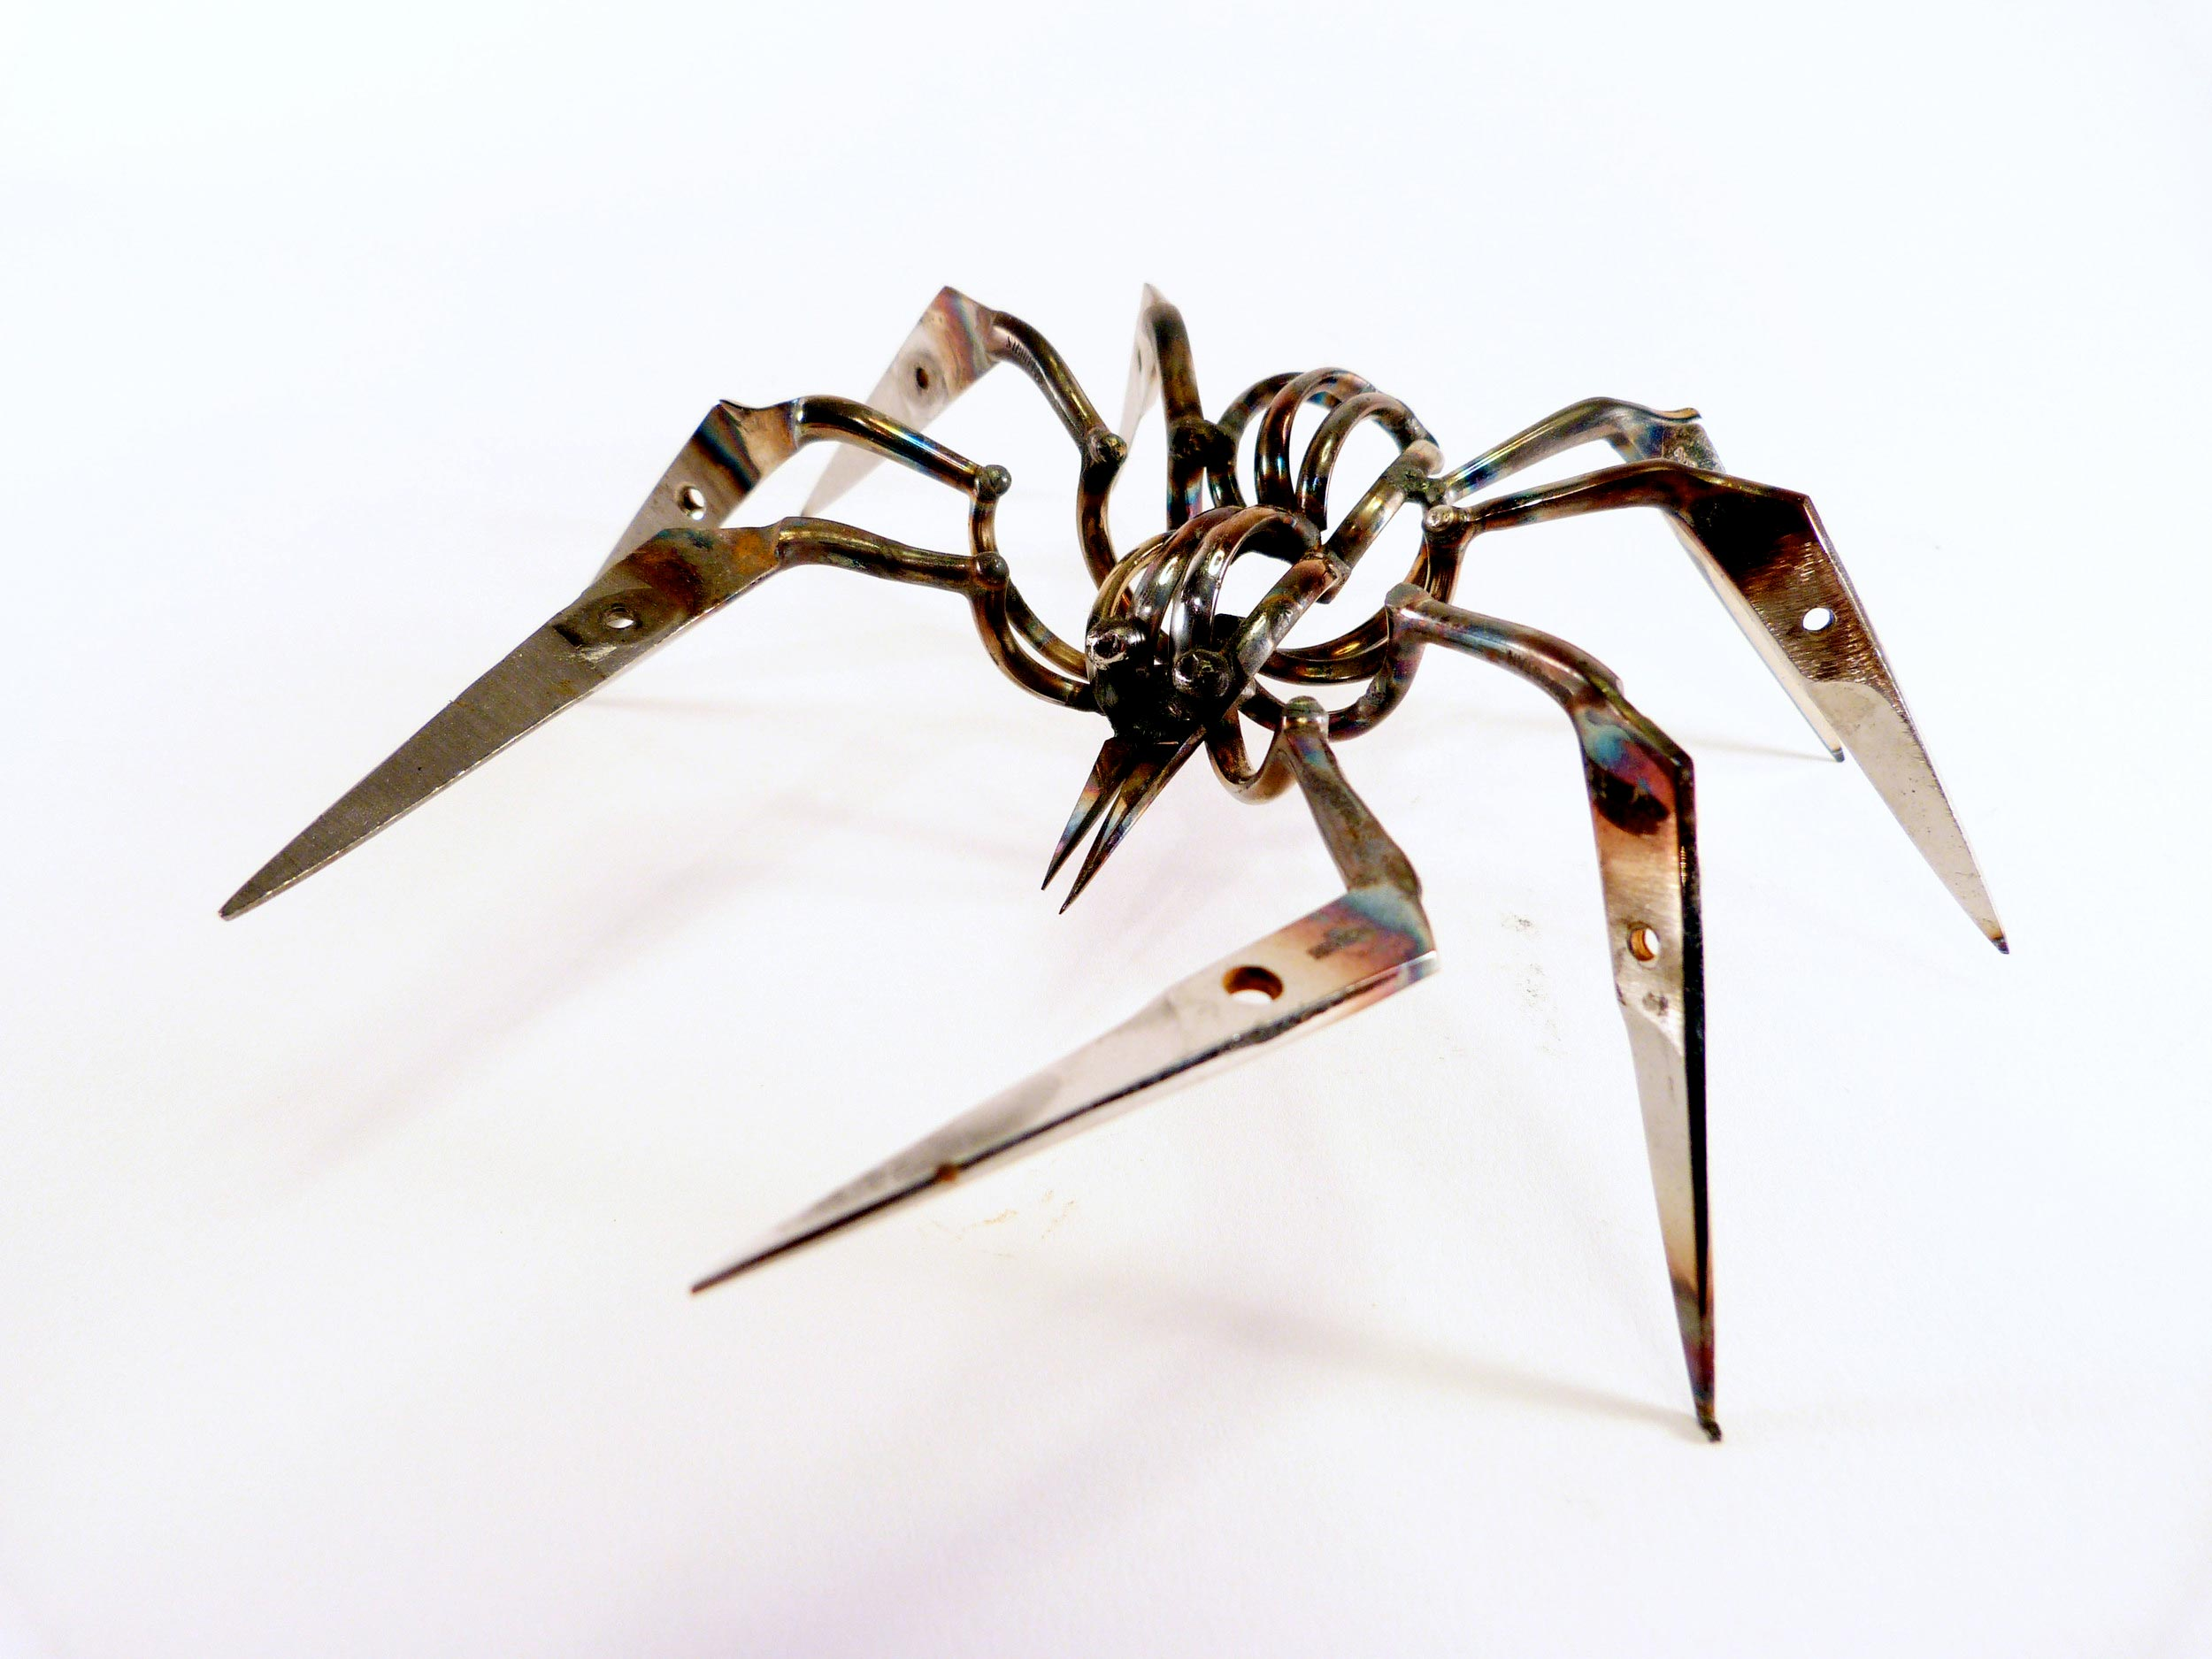 Christopher Locke Scissor Spiders